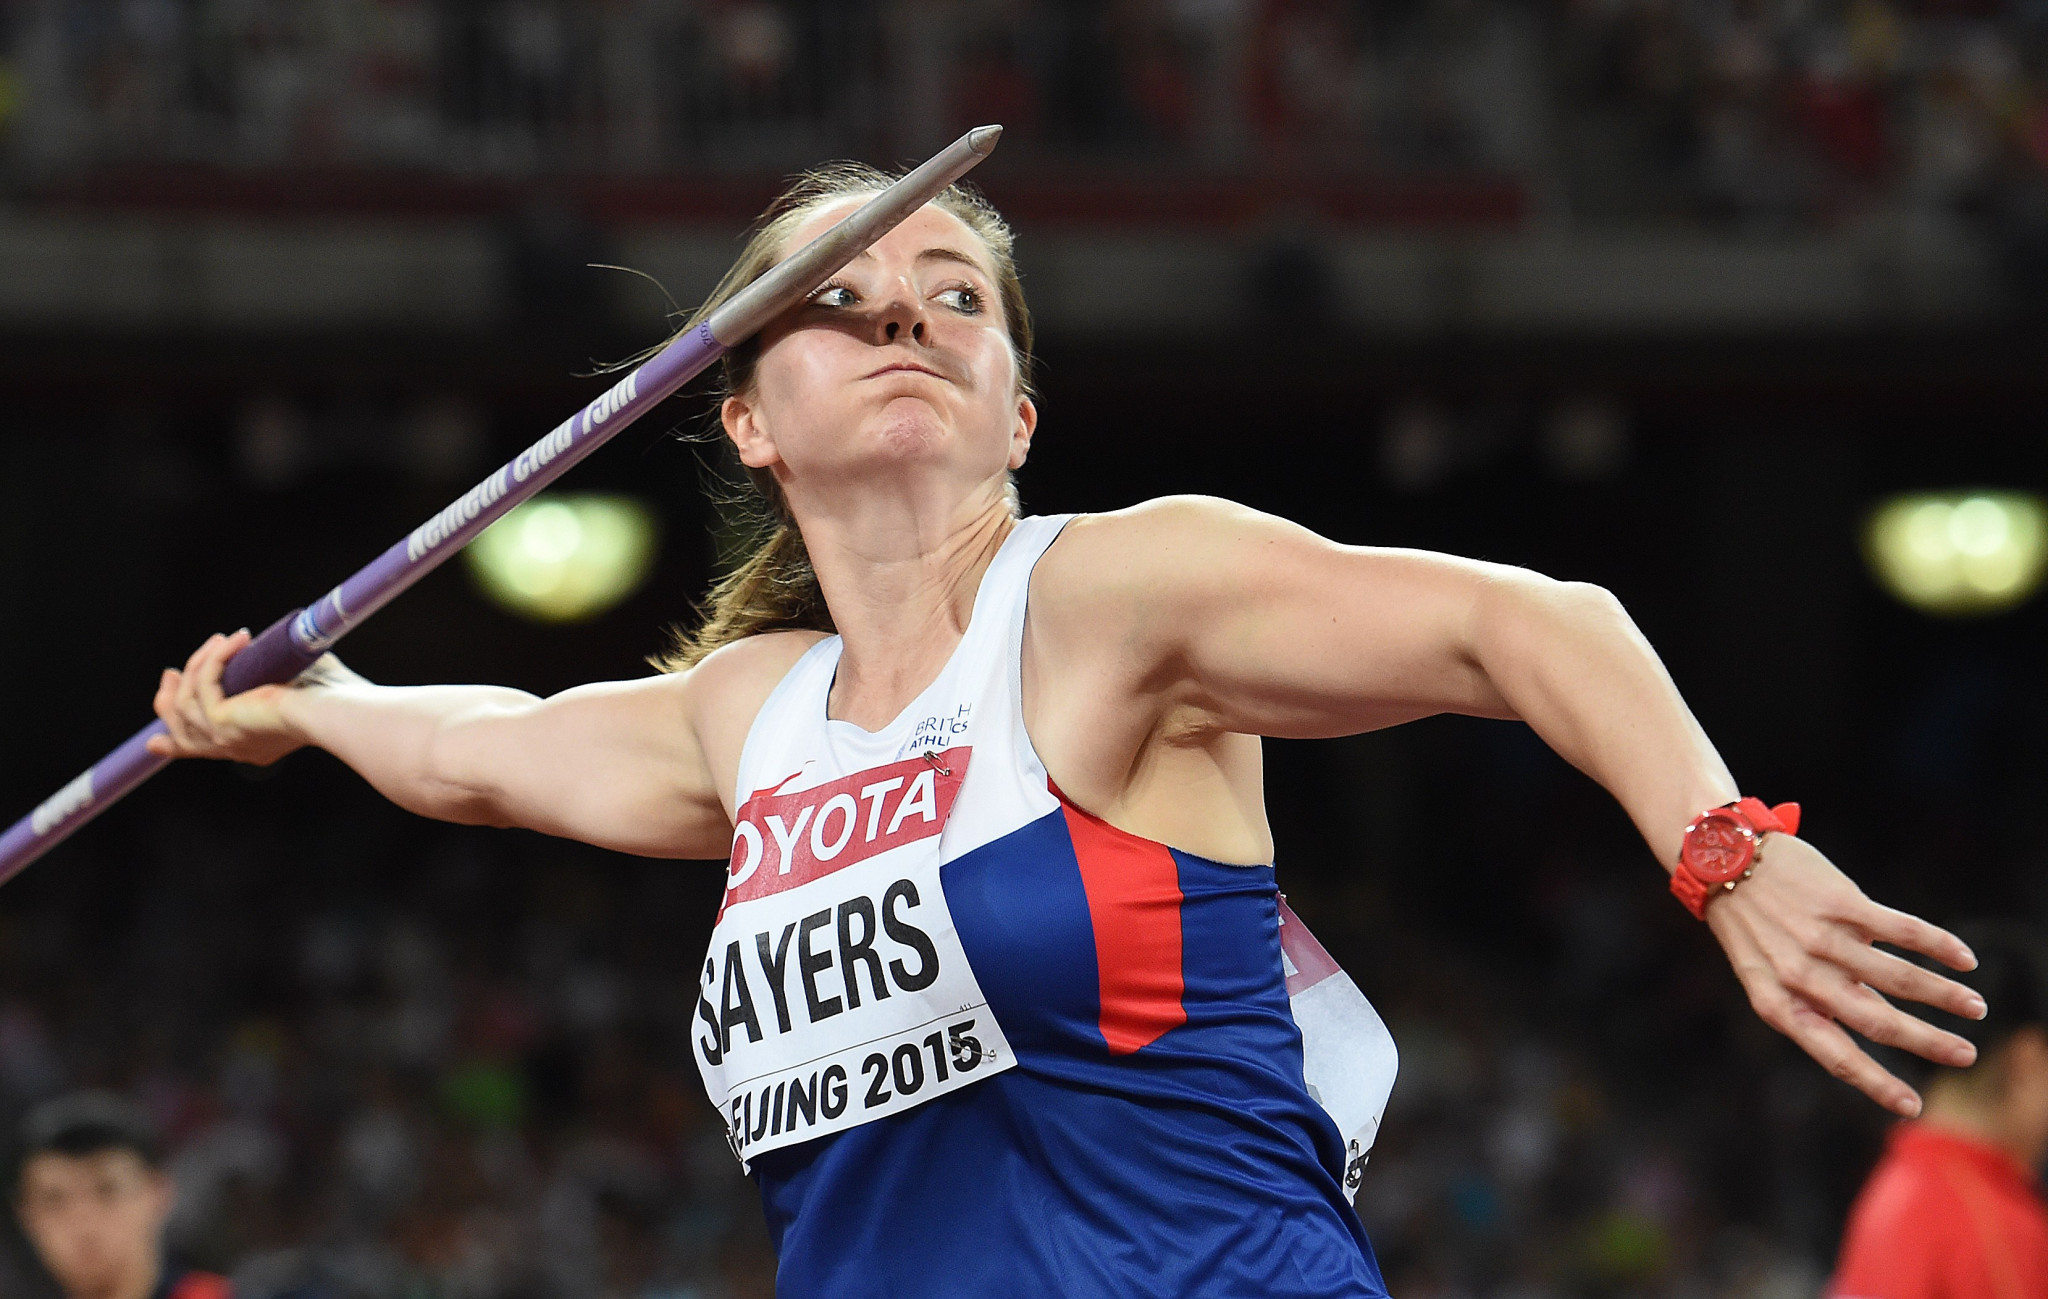 Goldie Sayers will be one of the tutors on the programme ©Getty Images